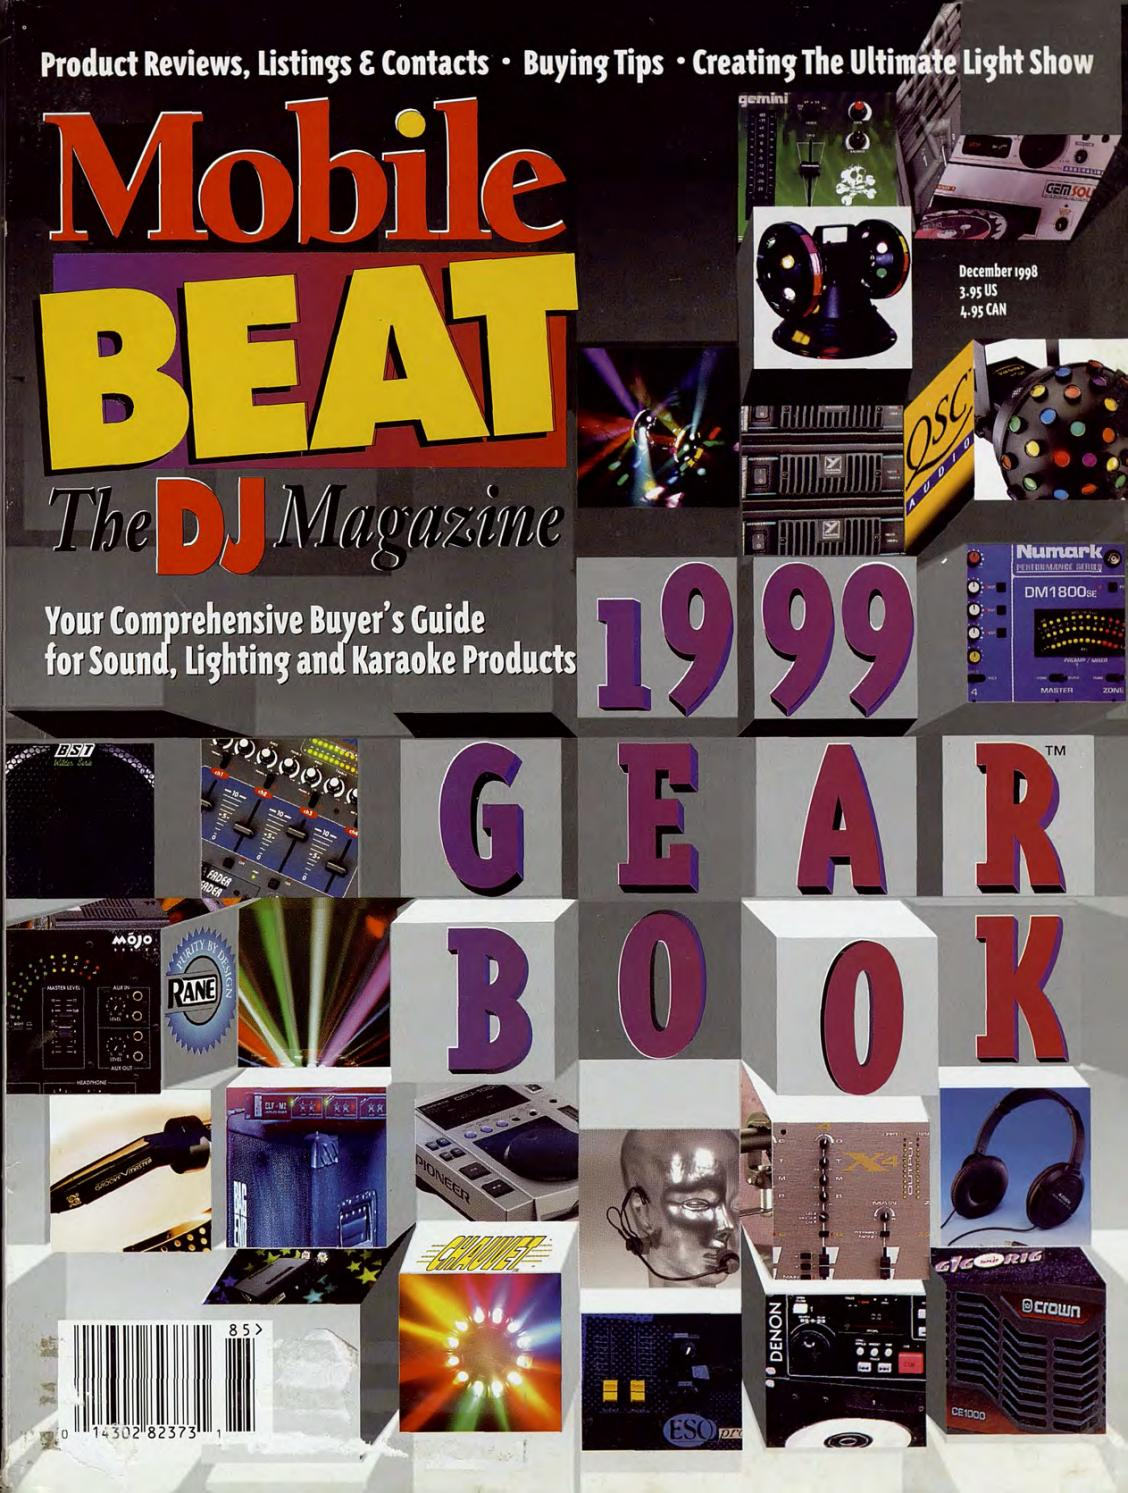 Issue 049 December 1998 1999 Gear Book By Mobile Beat Magazine Eq6 Pro Fried Circuit Board Fuse Replacement Discussions Mounts Issuu